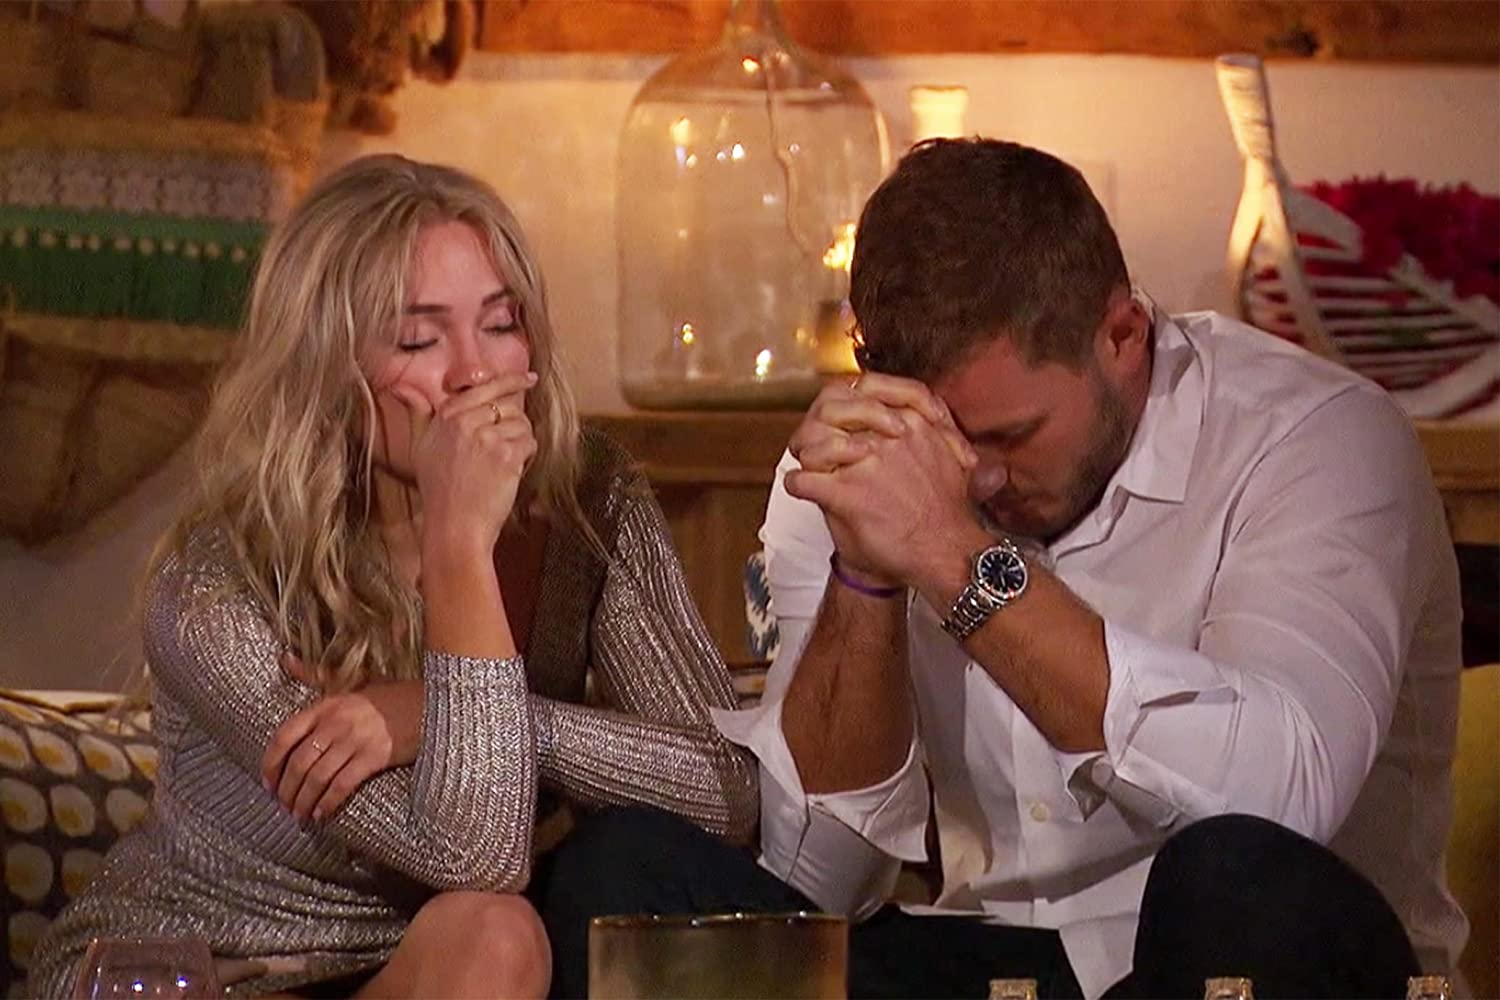 Colton Underwood's 'Bachelor' contract has ended, so he's now spilling the tea: 'There were lines crossed' by production